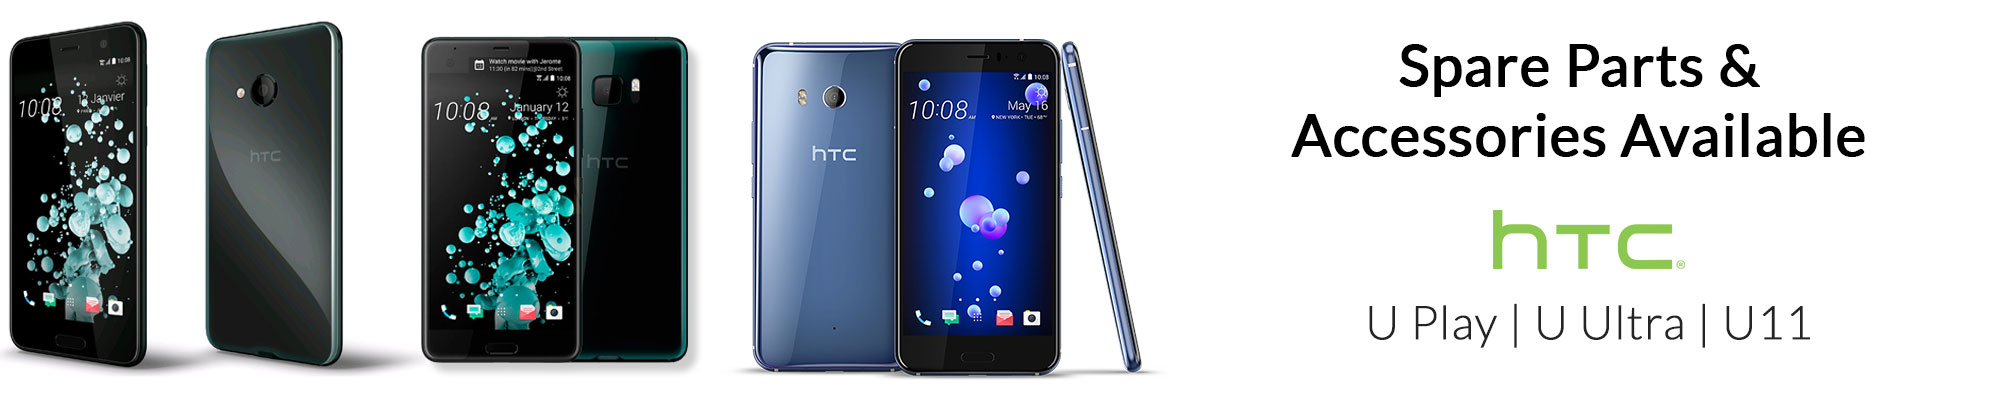 New Spare parts and accessoires available for the HTC U Play, U Ultra and U11